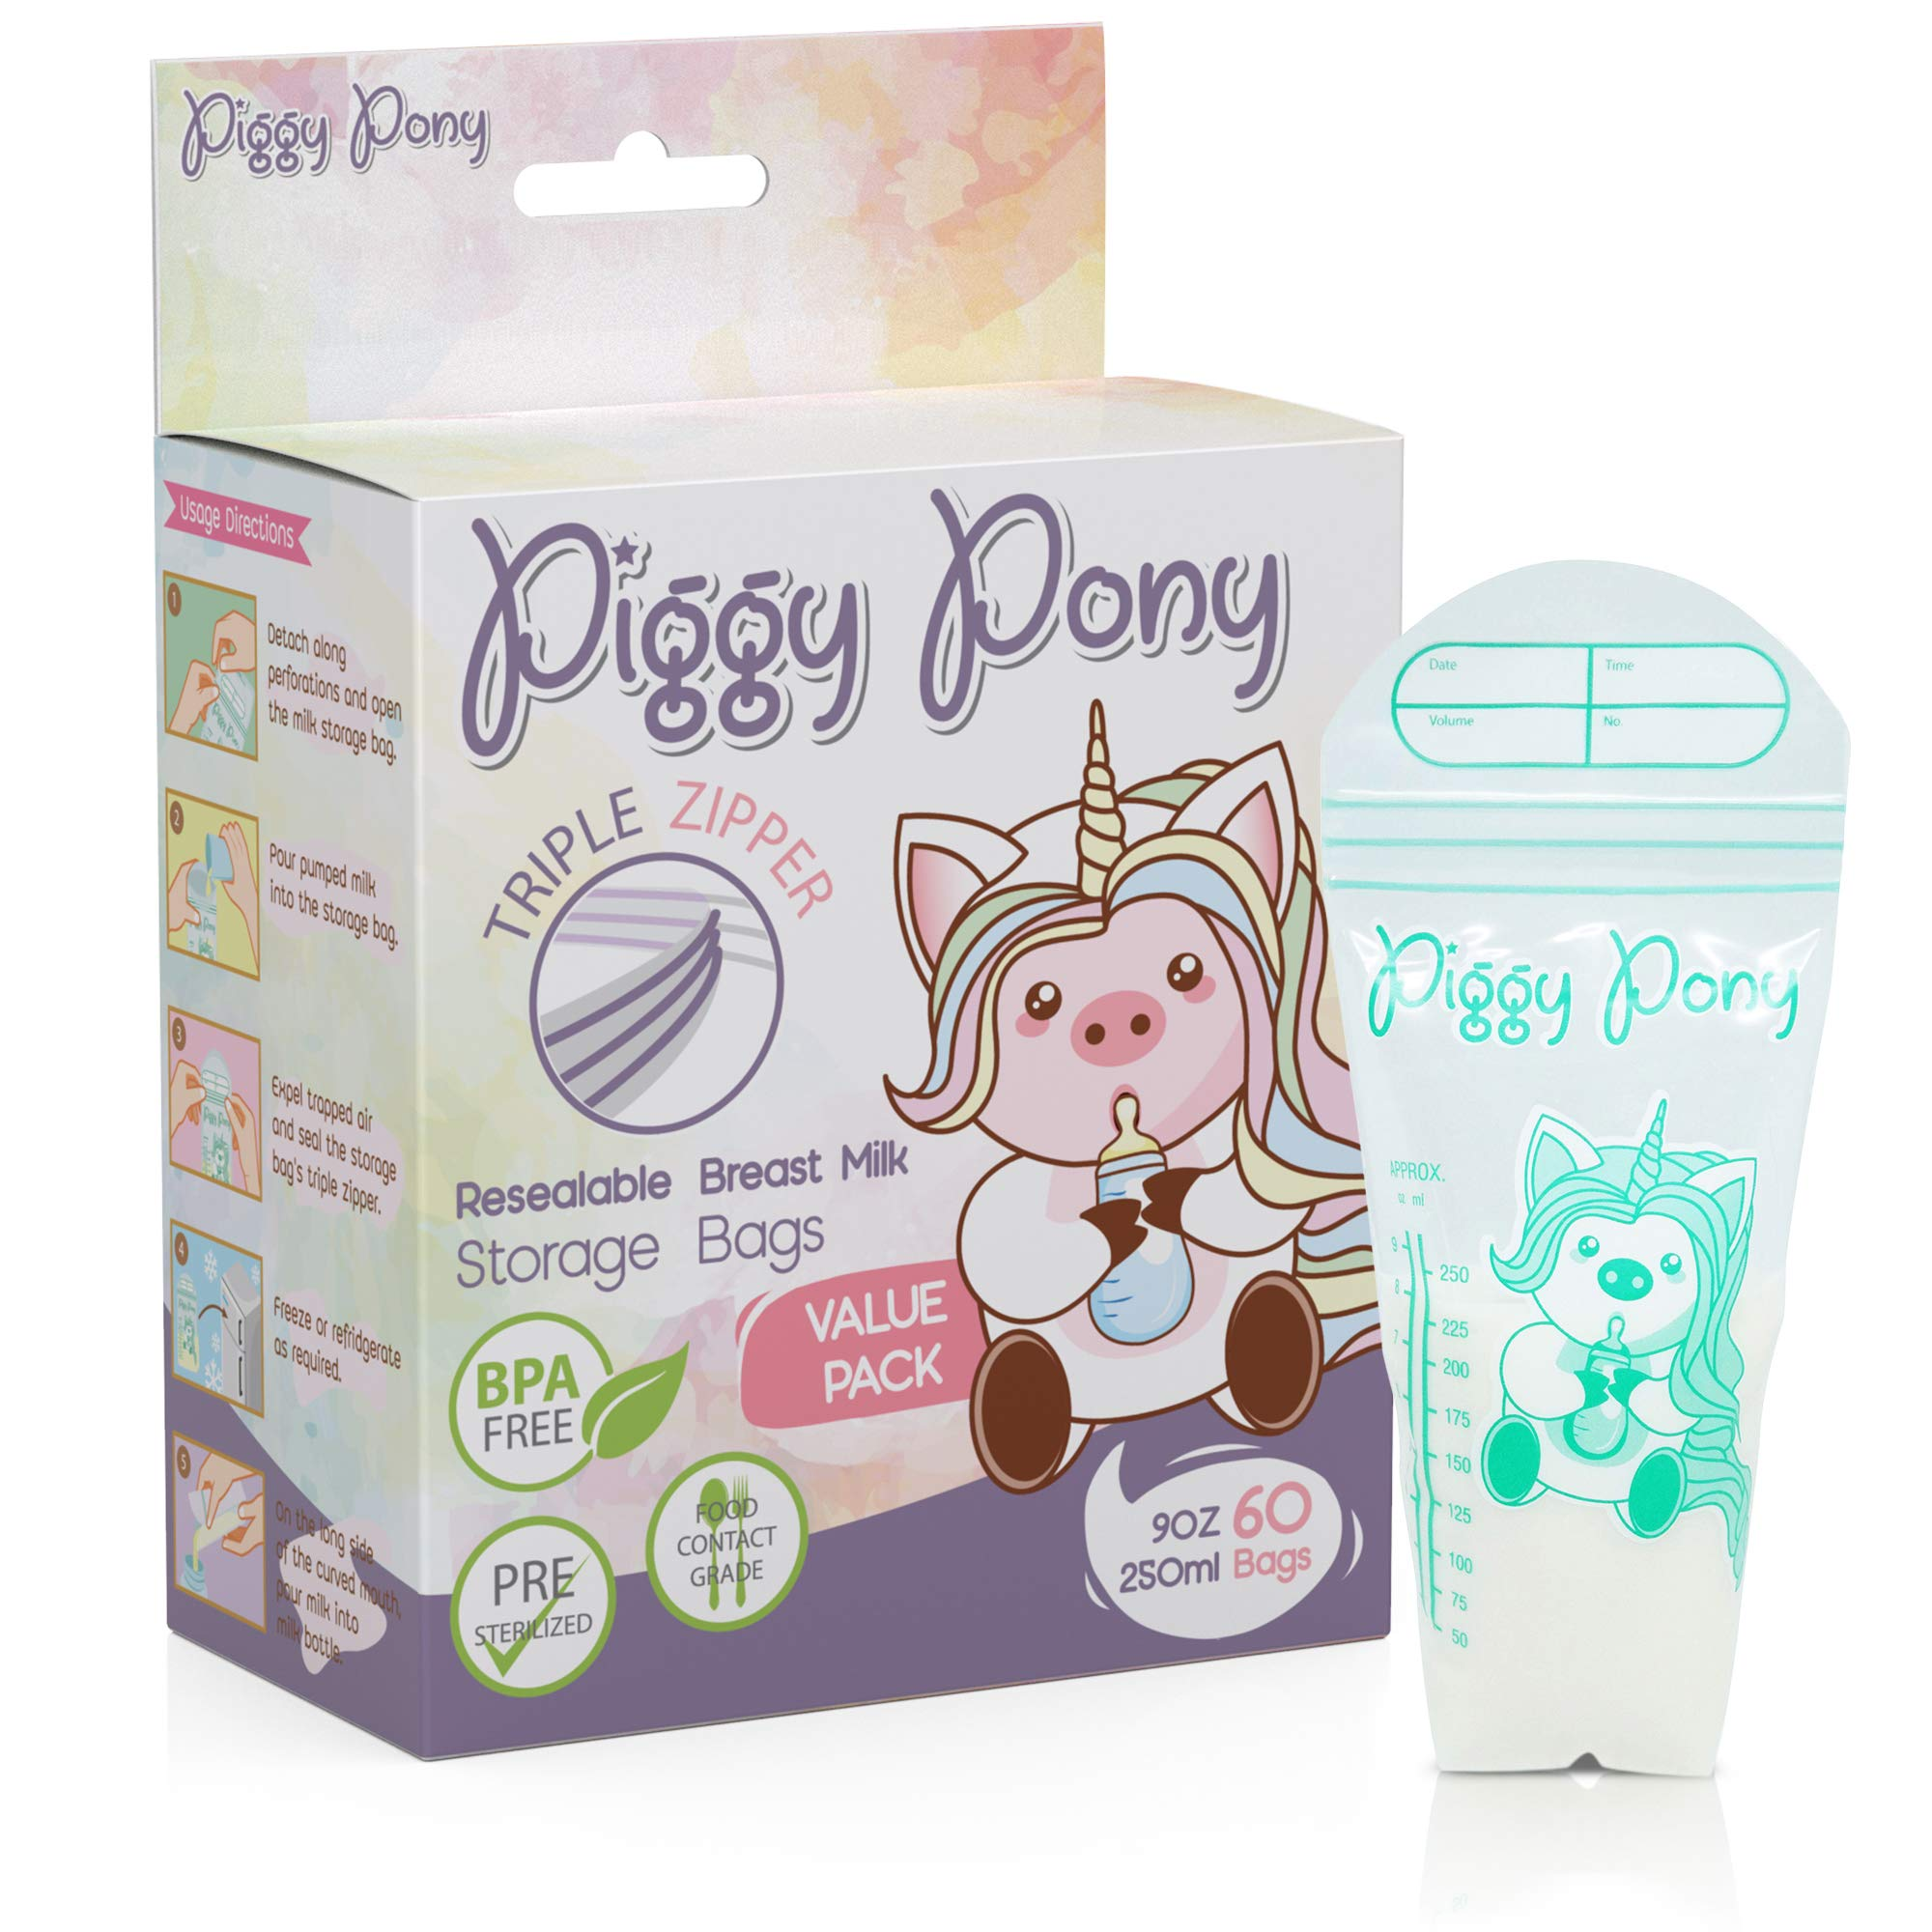 Piggy Pony 9 0z Breastmilk Storage Bags 60 Count Breastfeeding Nursing Triple-Zip Freezer Leak-Proof Resealable Nursing Pump Pouches BPA Free Reusable by Piggy Pony